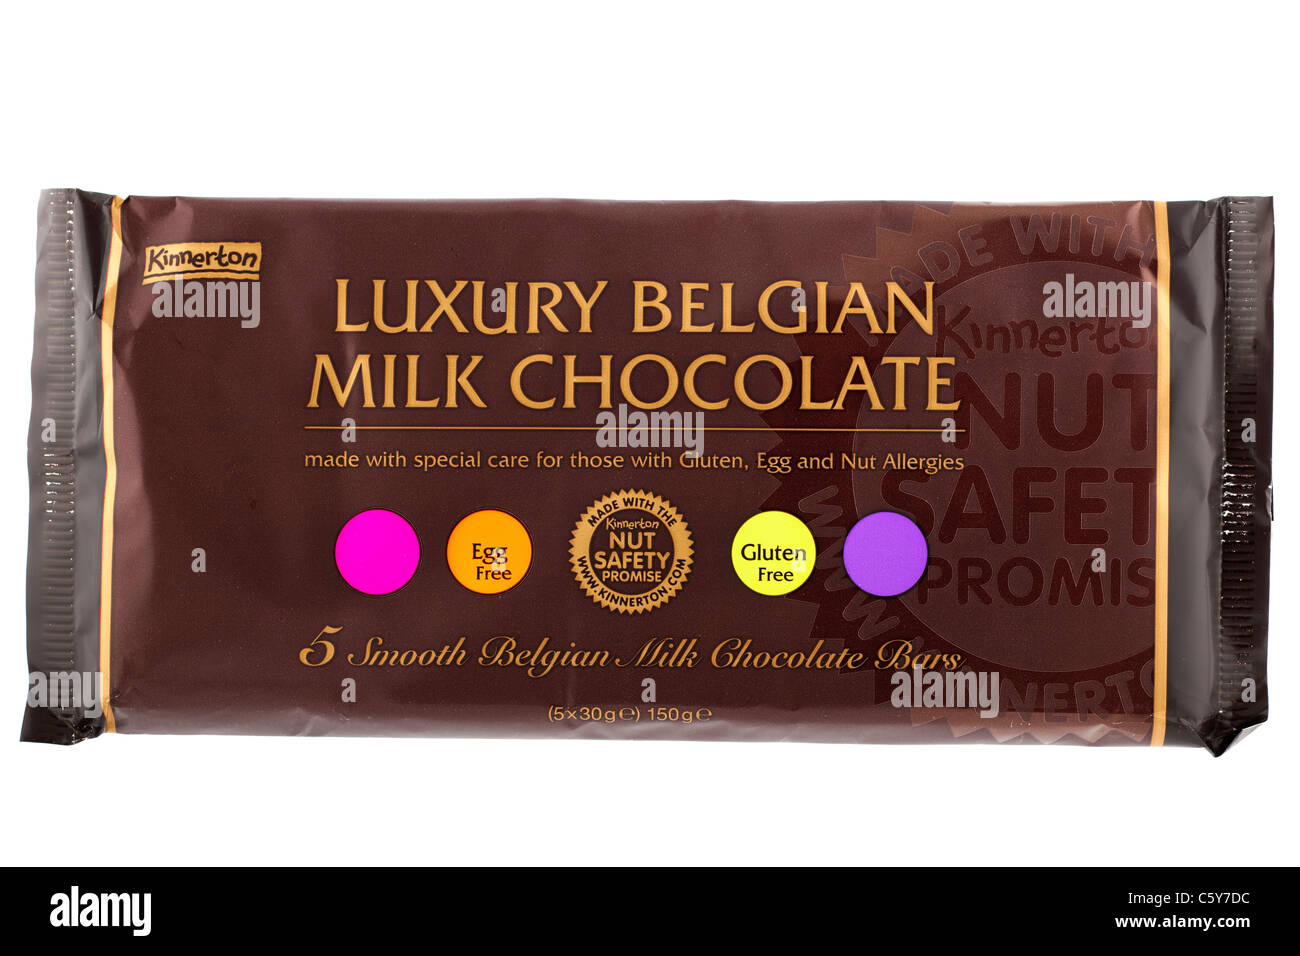 Kinnerton multipack of 5 30 gram bars of nut safety promise Belgian milk chocolate. - Stock Image